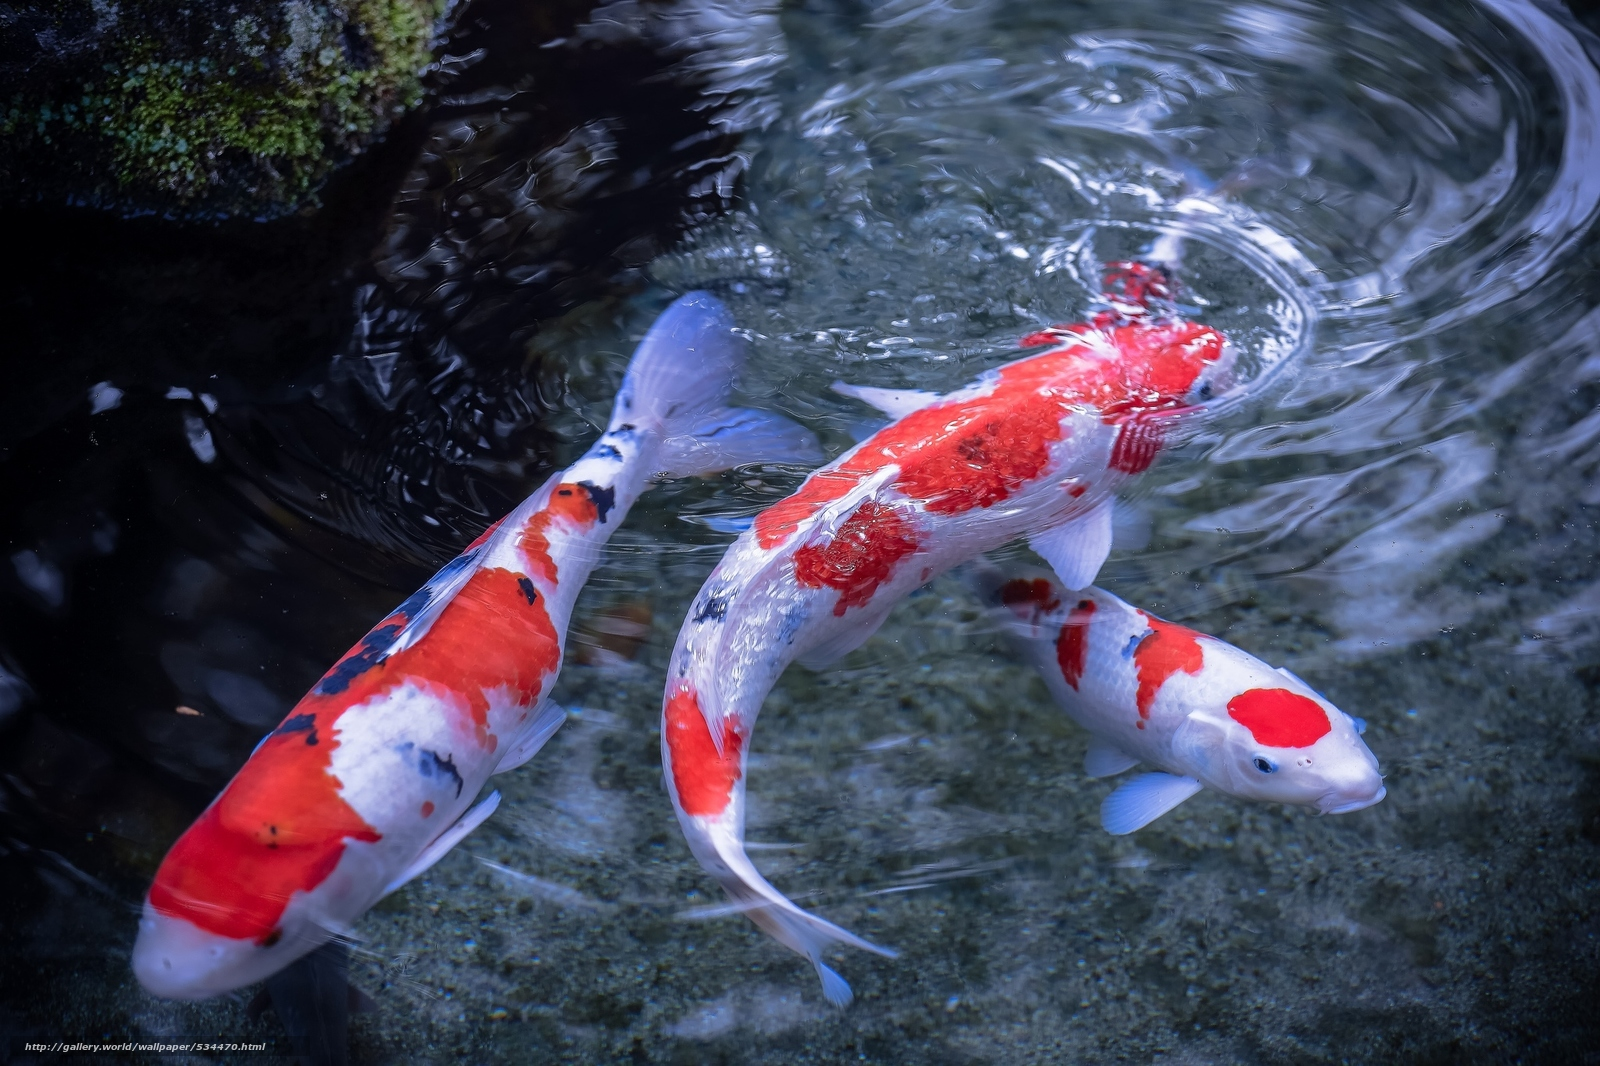 Download wallpaper koi,  Japanese carp,  water,  Fish free desktop wallpaper in the resolution 2048x1365 — picture №534470